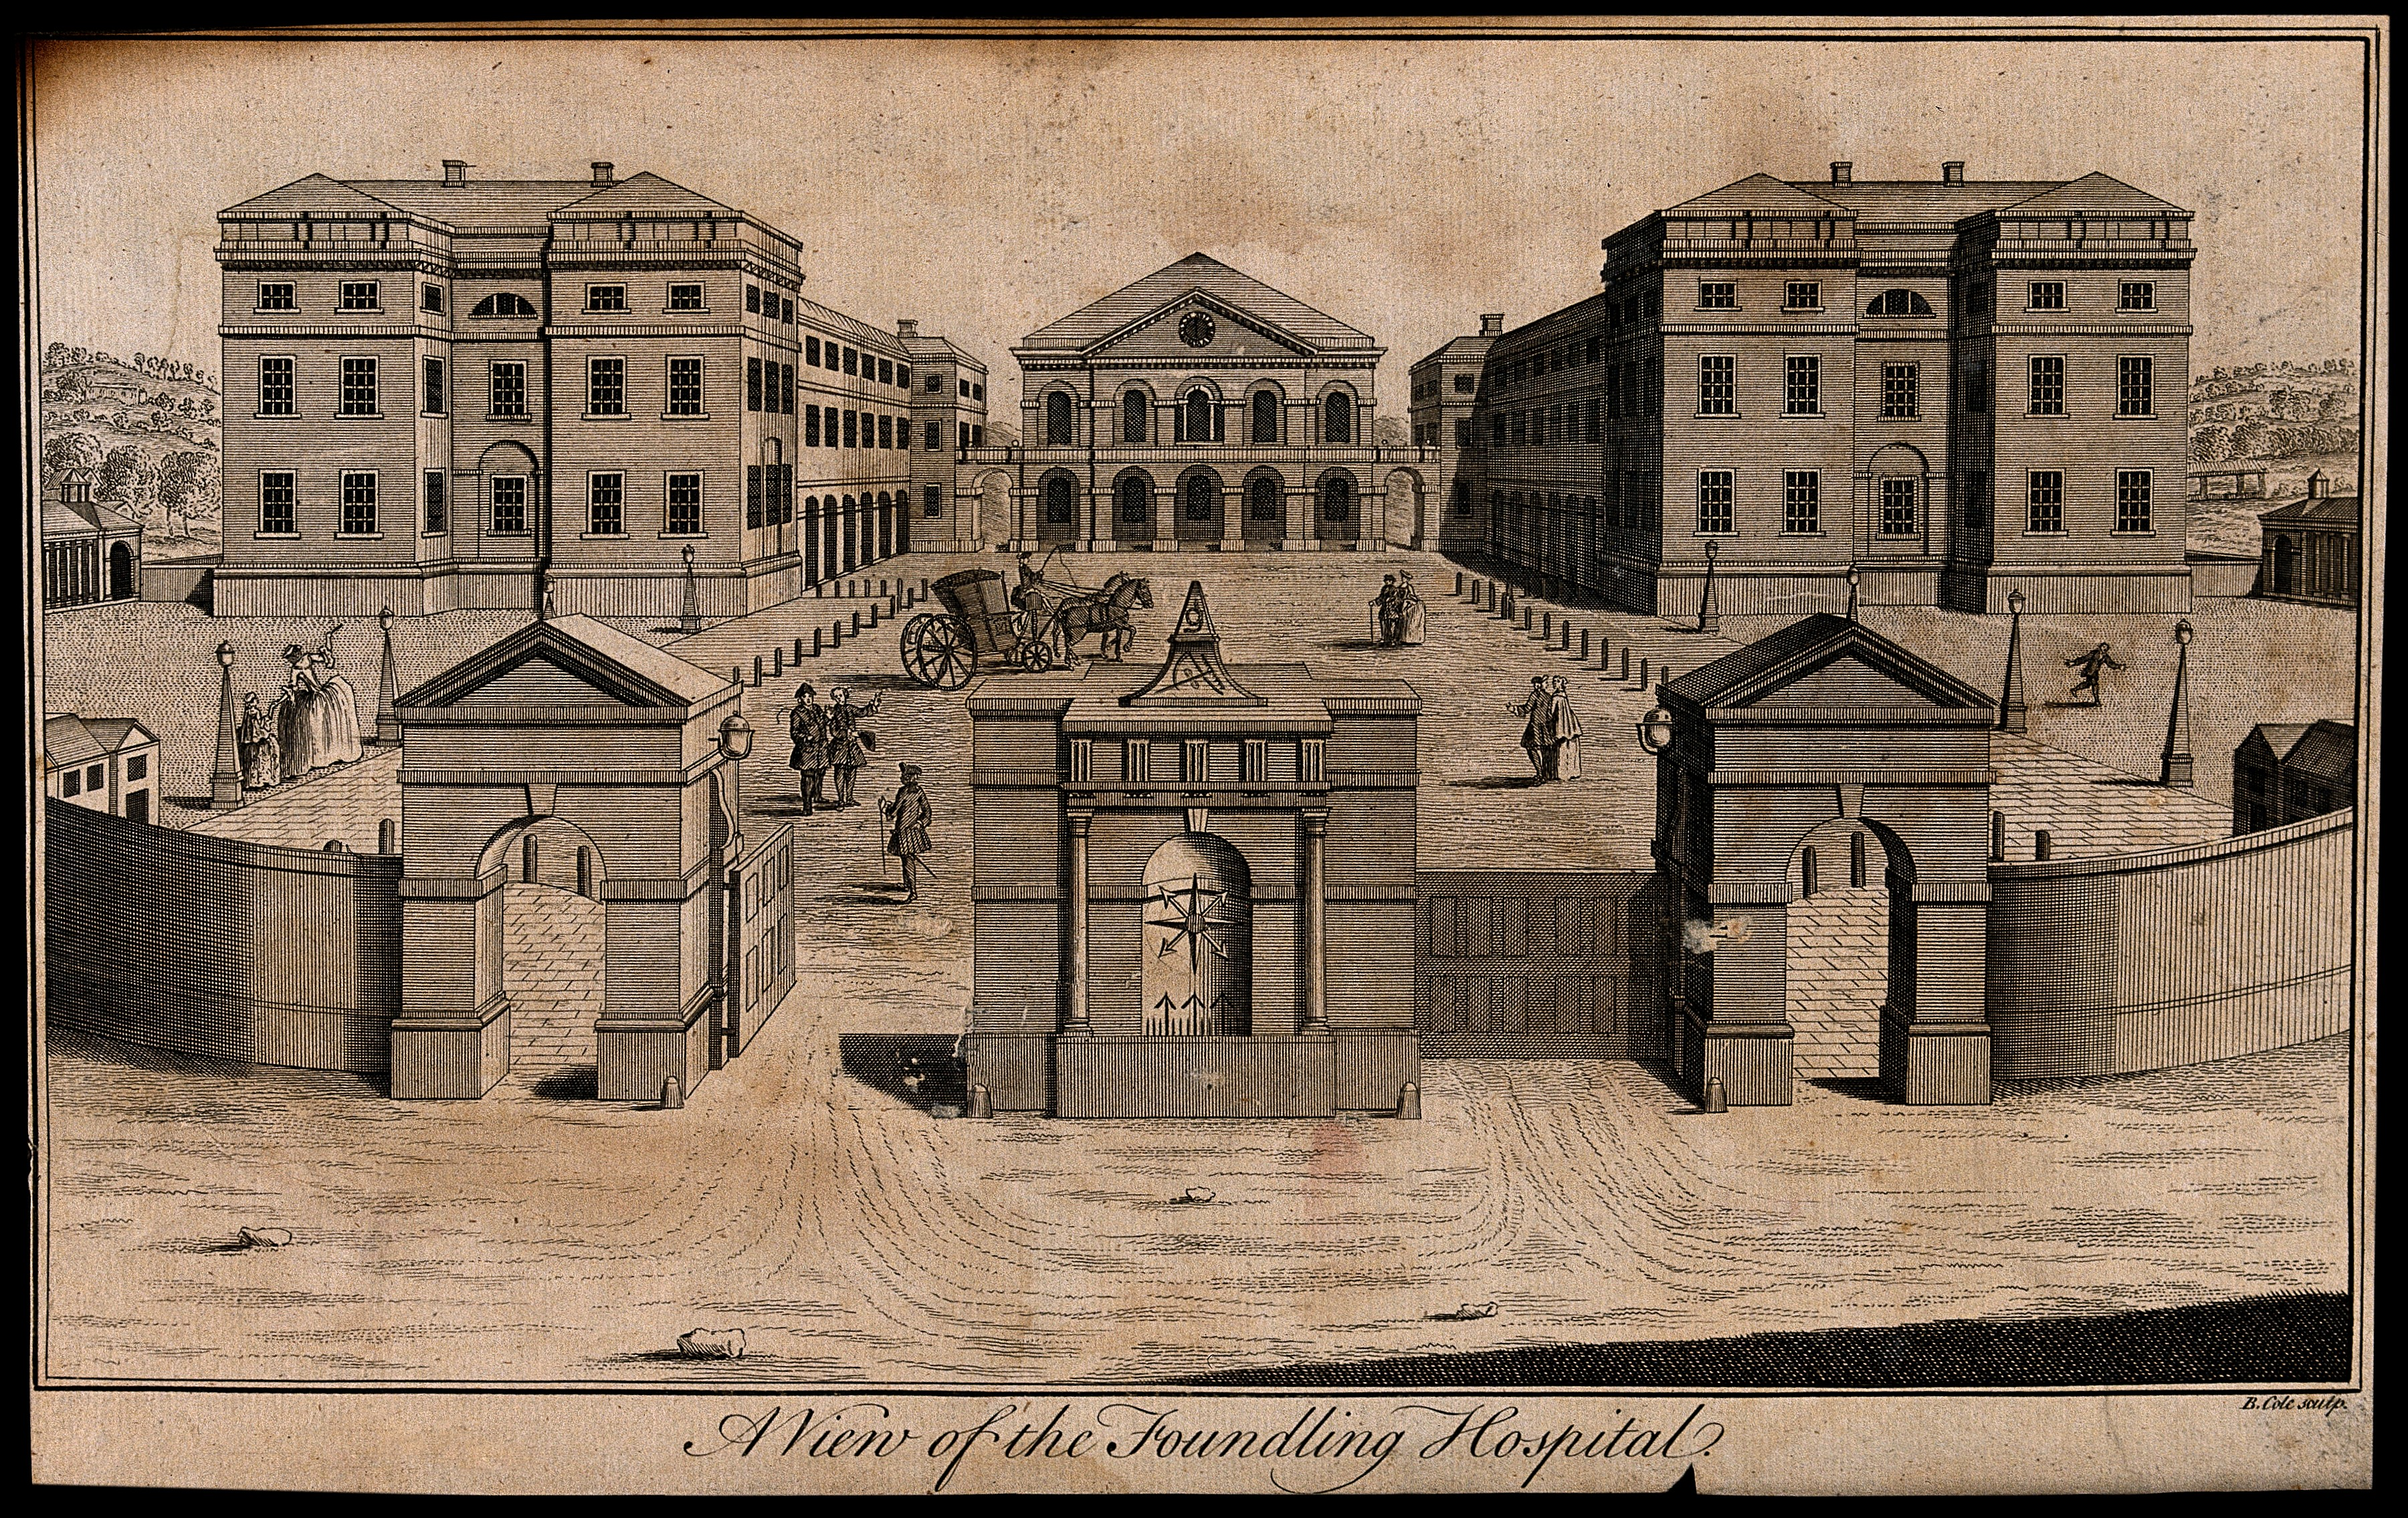 Courtyard Homes Foundling Hospital The National Archives